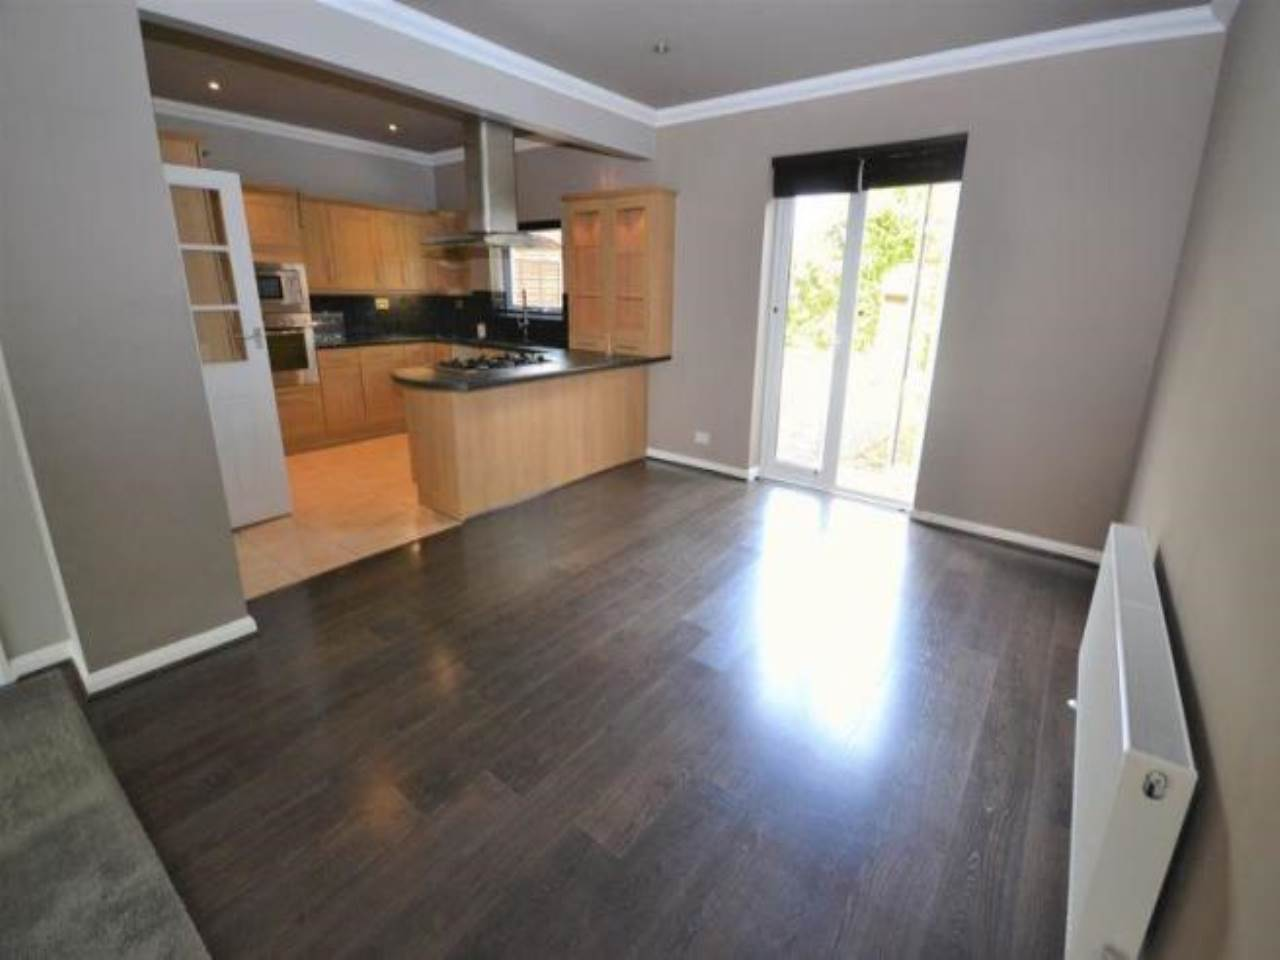 4 bed house for sale in Cowper Road, Moordown 4